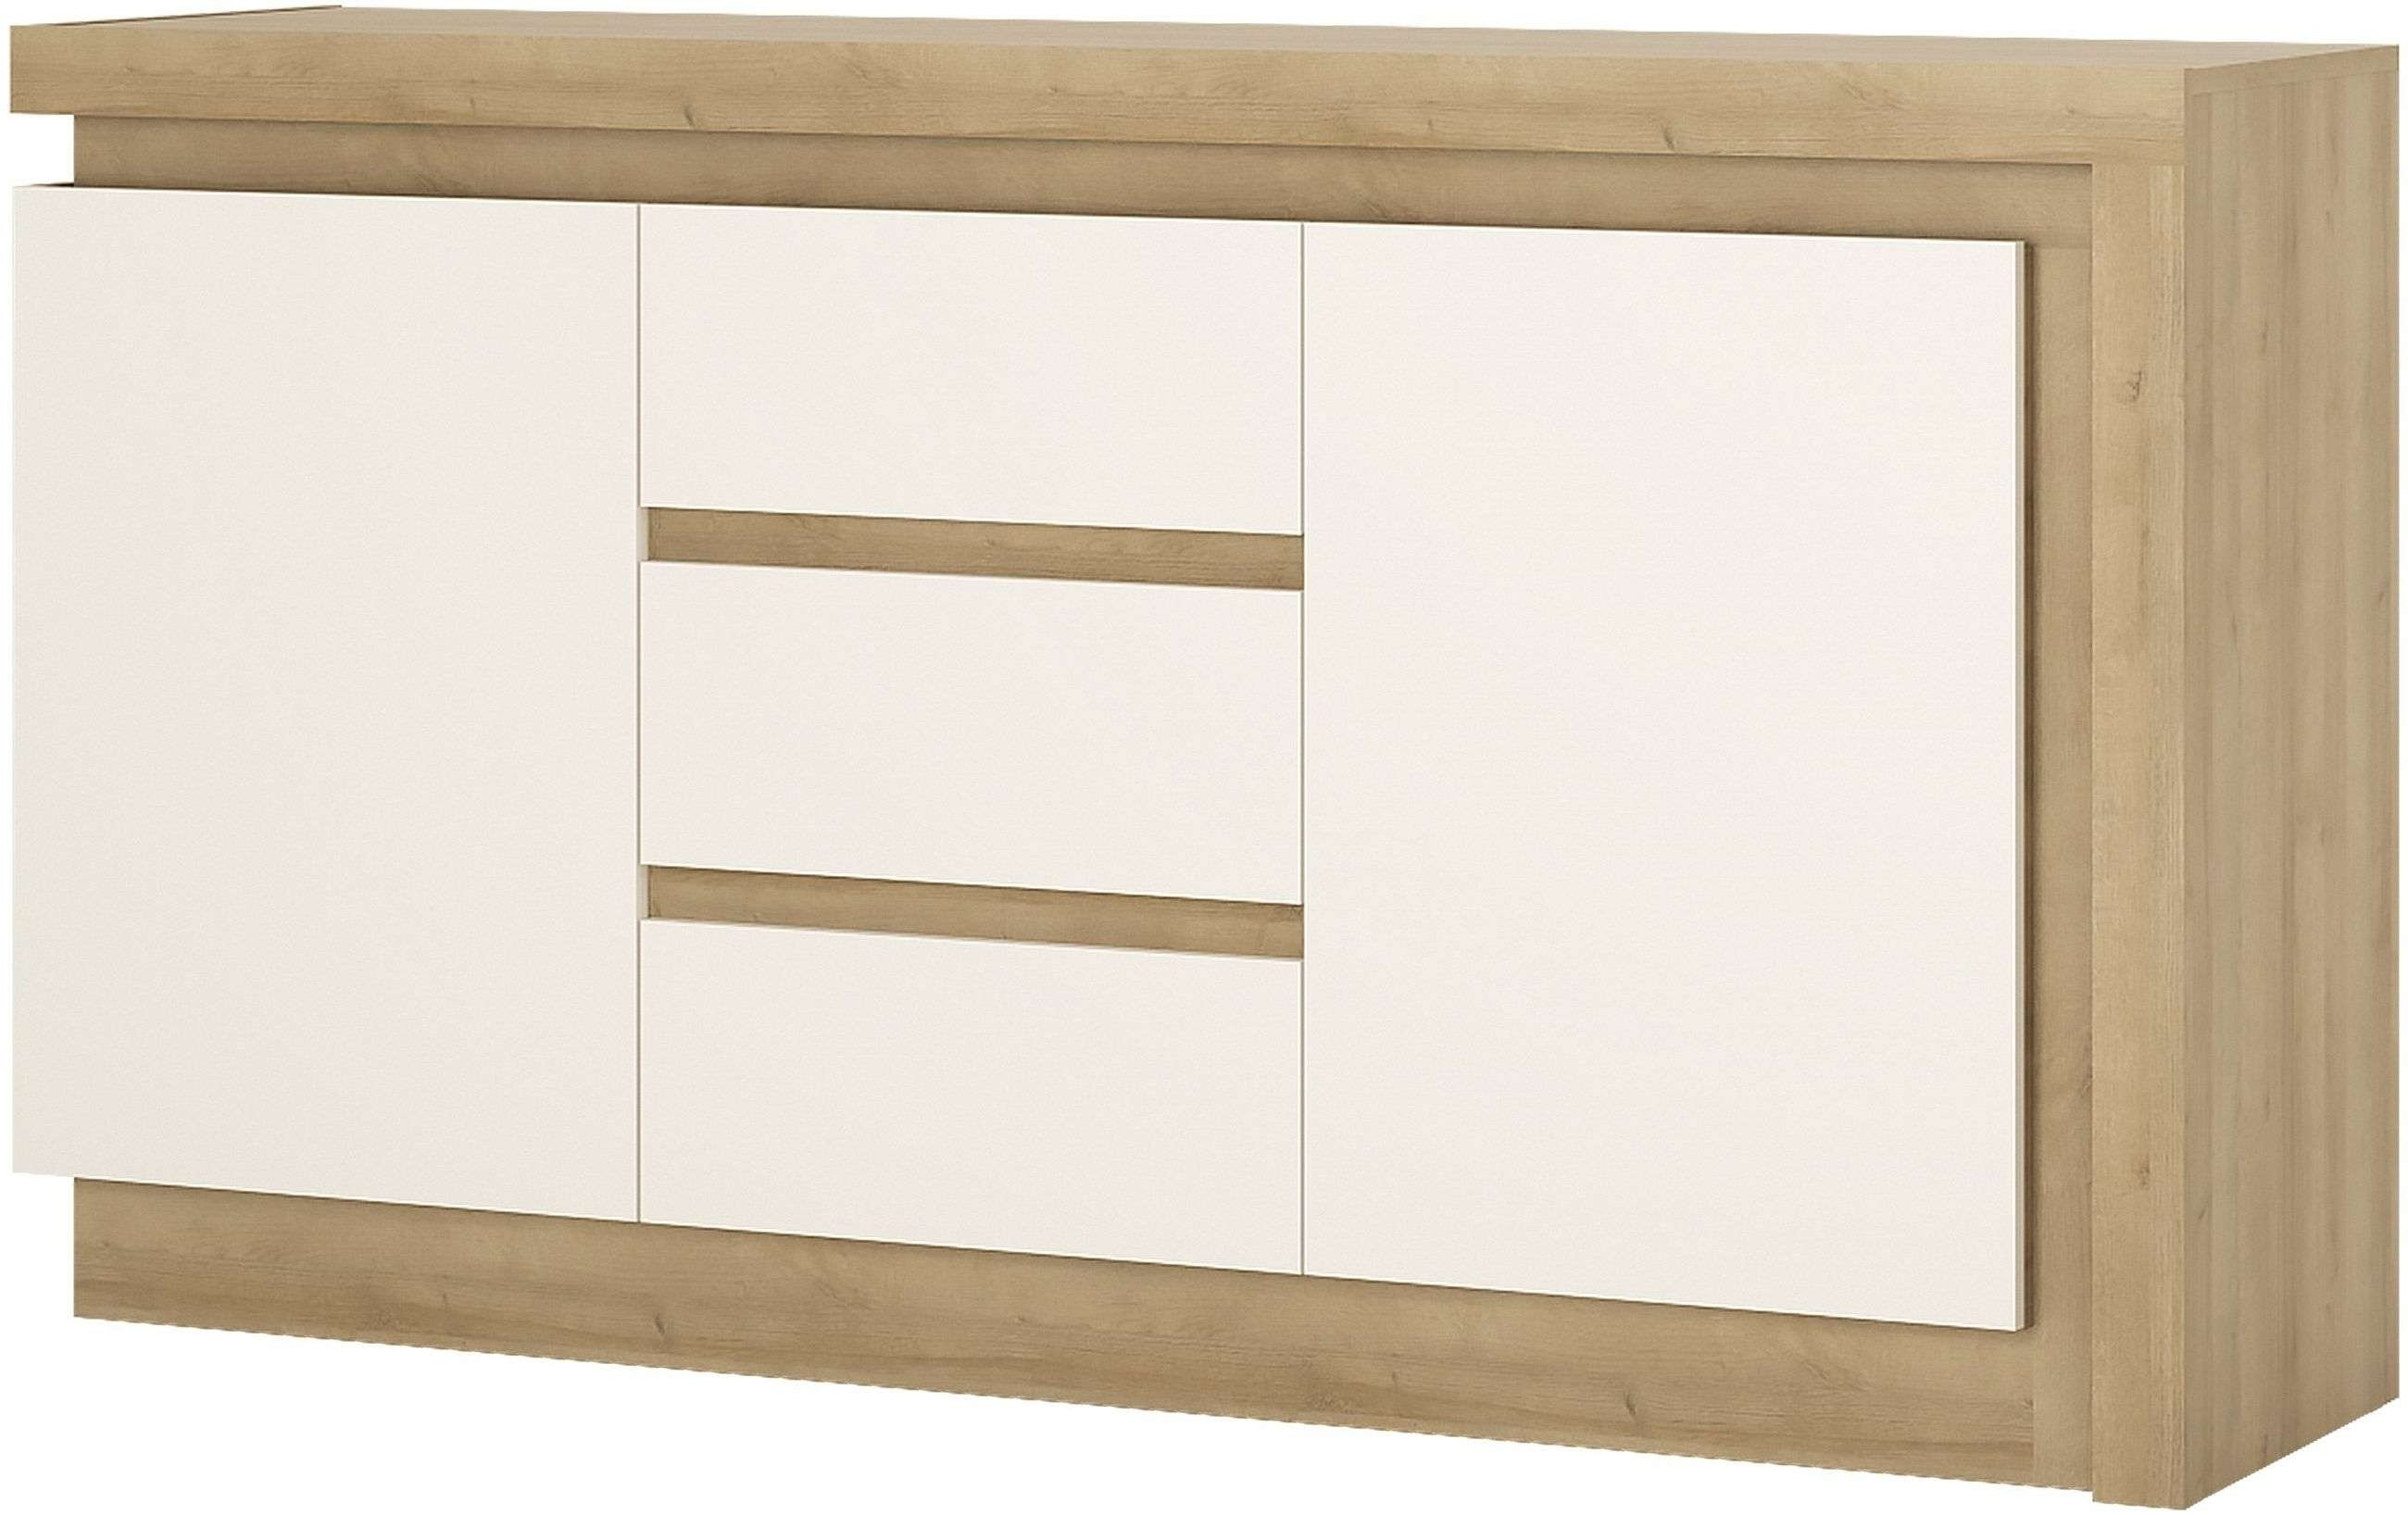 Buy Lyon Riviera Oak And White High Gloss Sideboard – 2 Door 3 Pertaining To White High Gloss Sideboards (View 5 of 20)